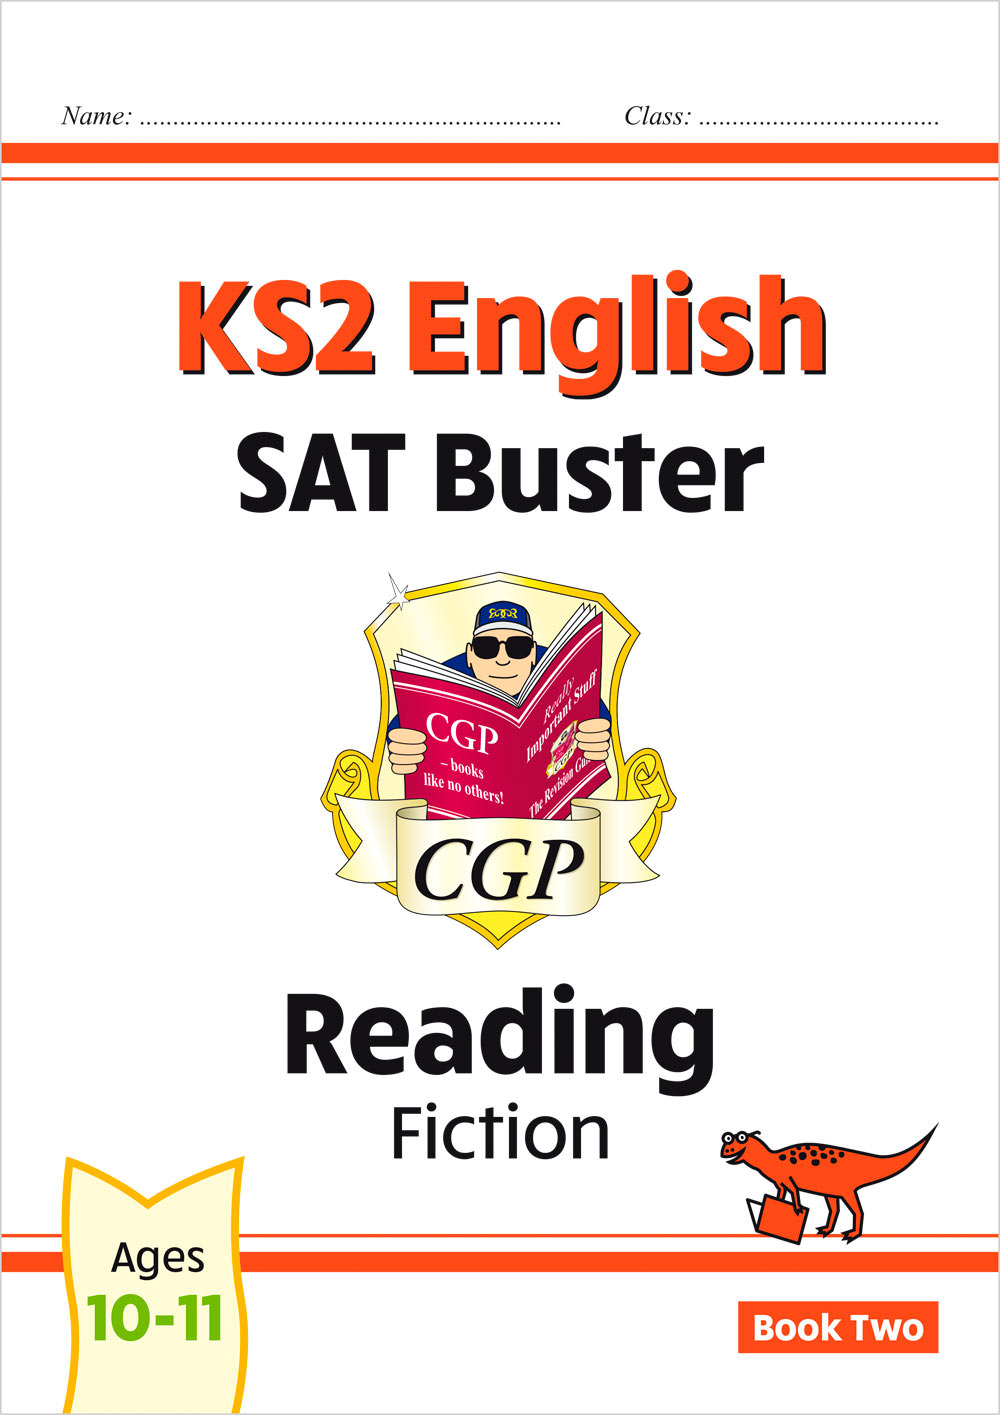 E6FRF222 - New KS2 English Reading SAT Buster: Fiction - Book 2